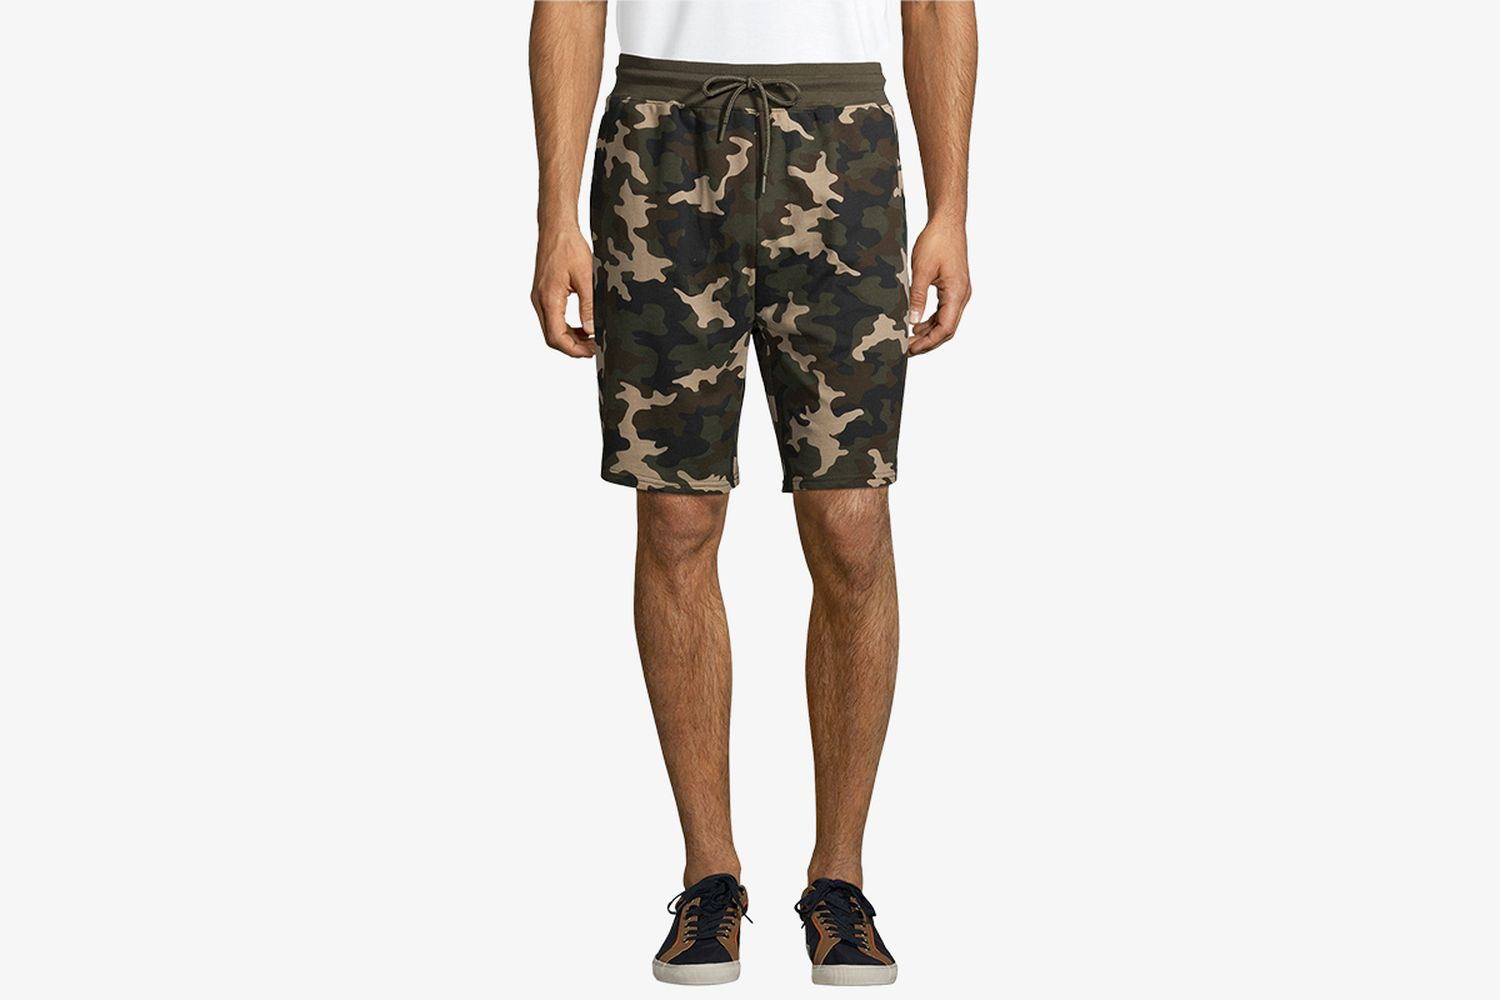 Men's Lounge Shorts